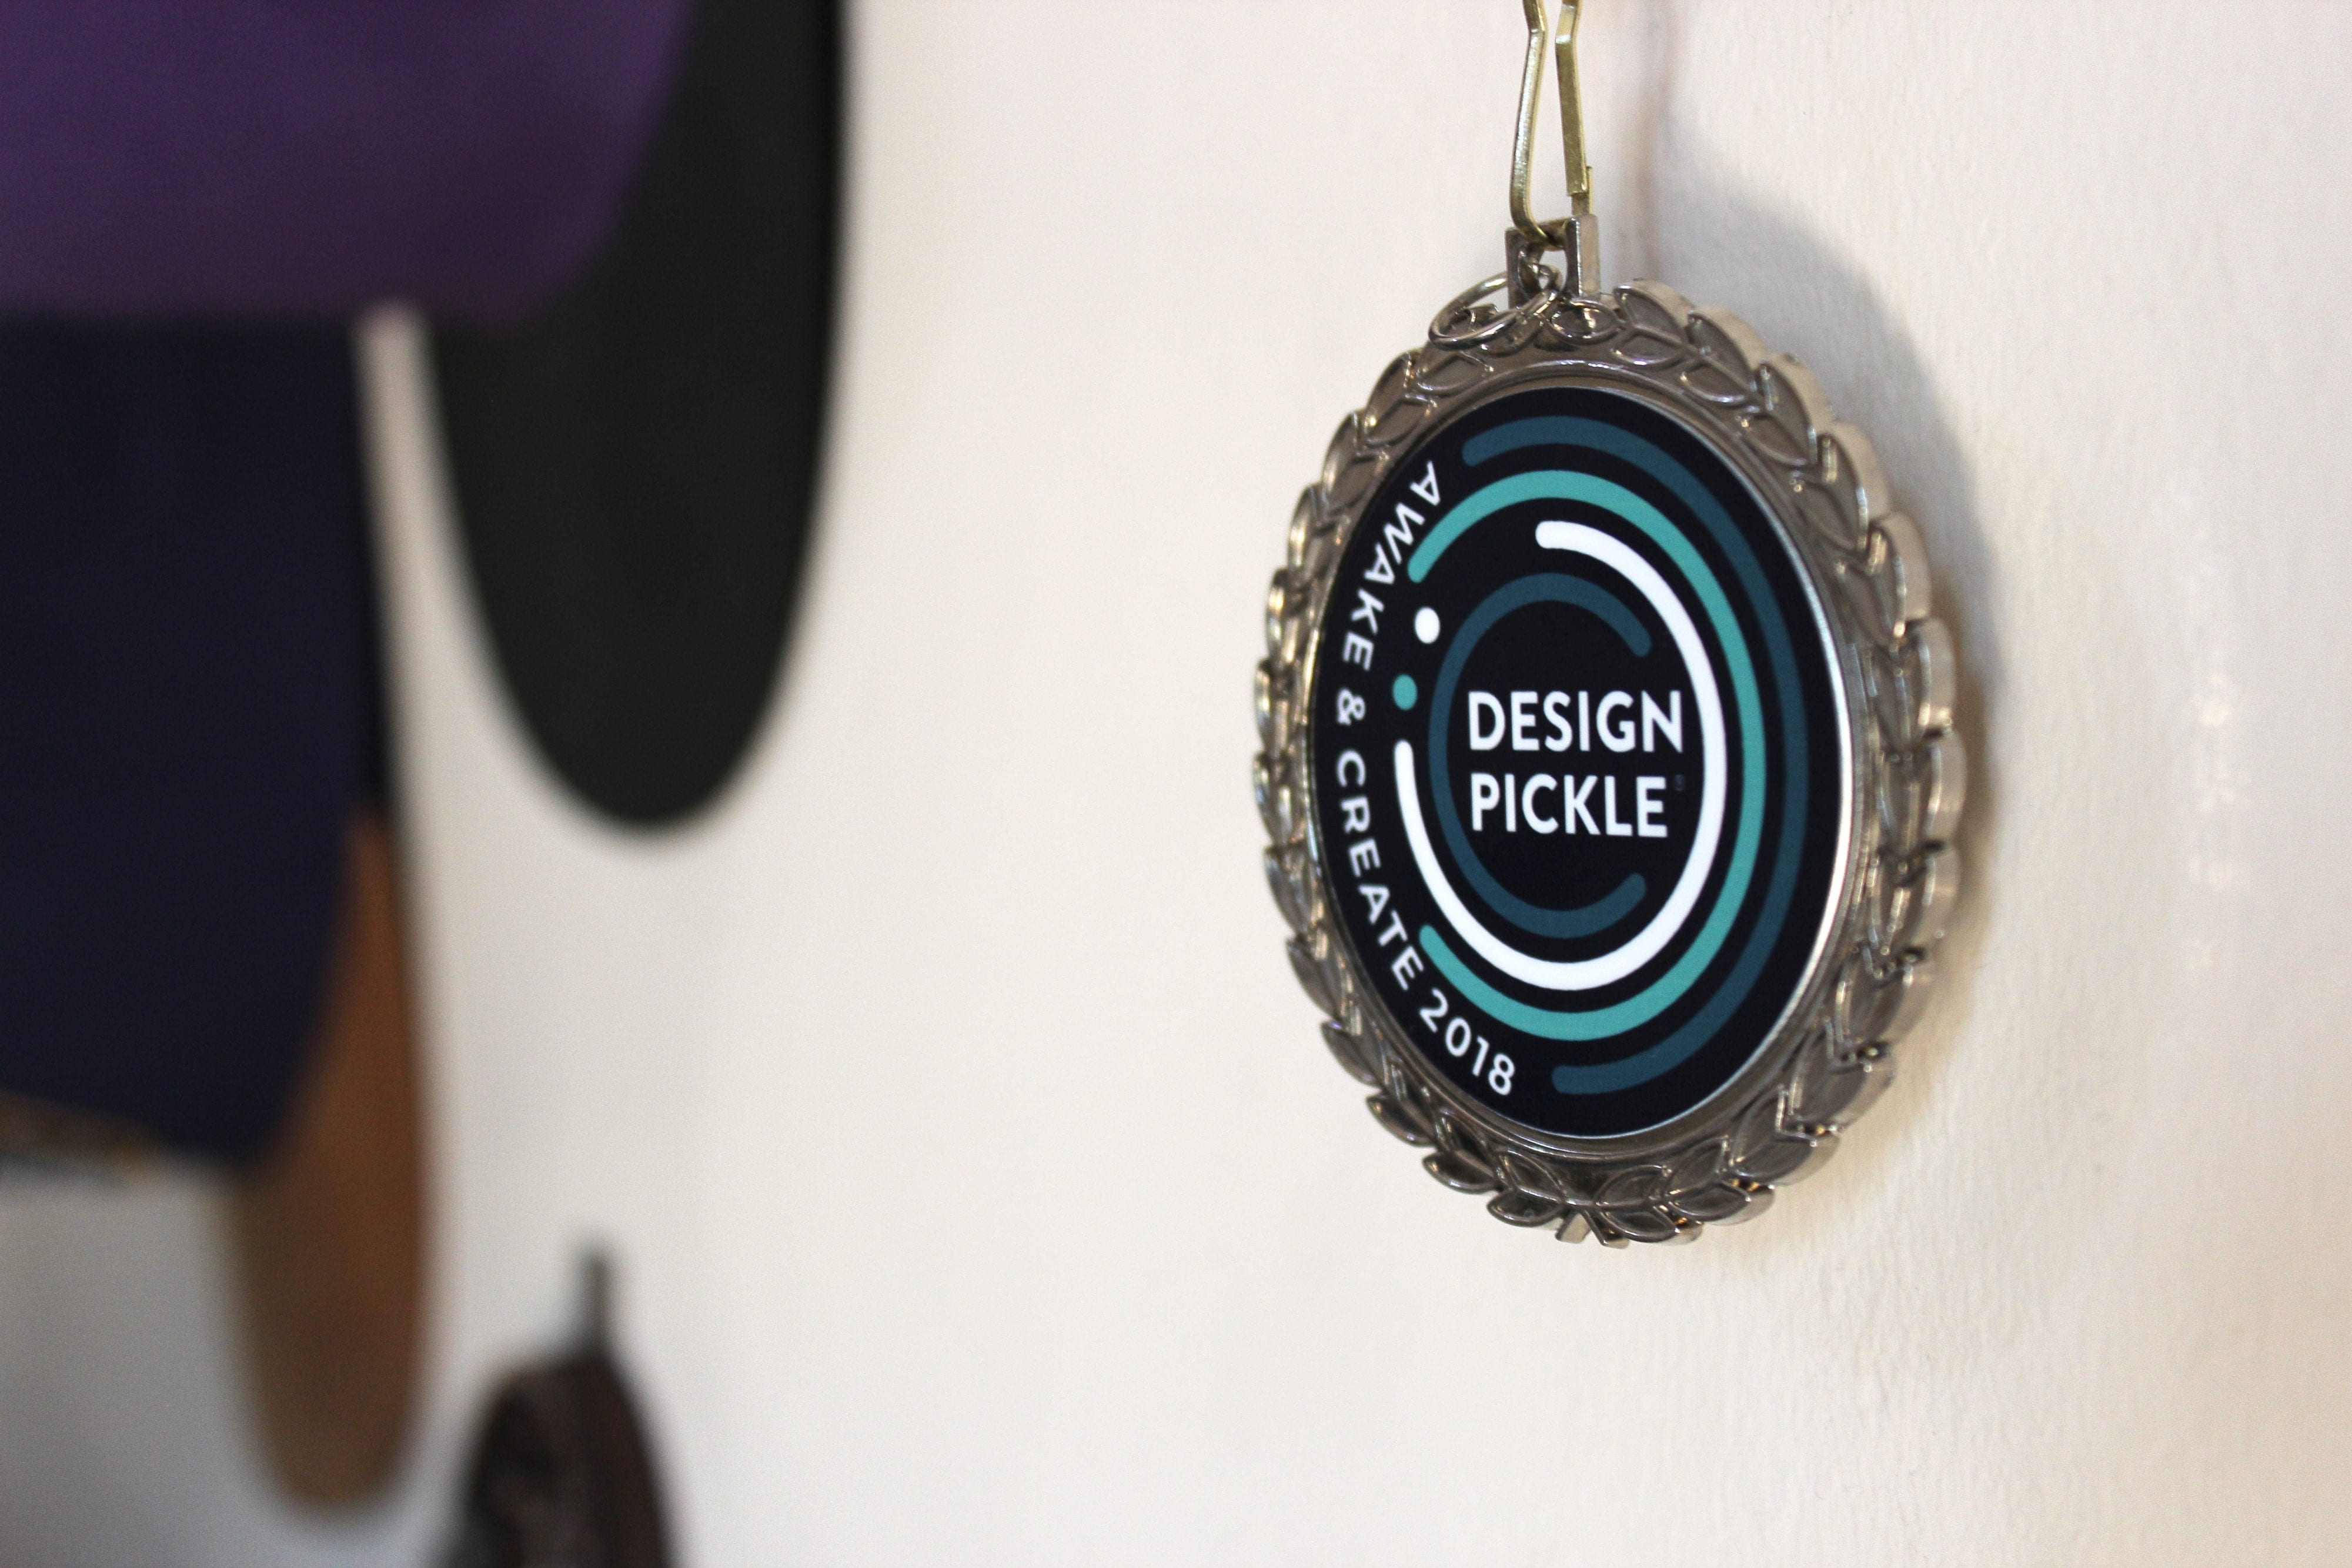 an image of the Design Pickle PickleCon badge